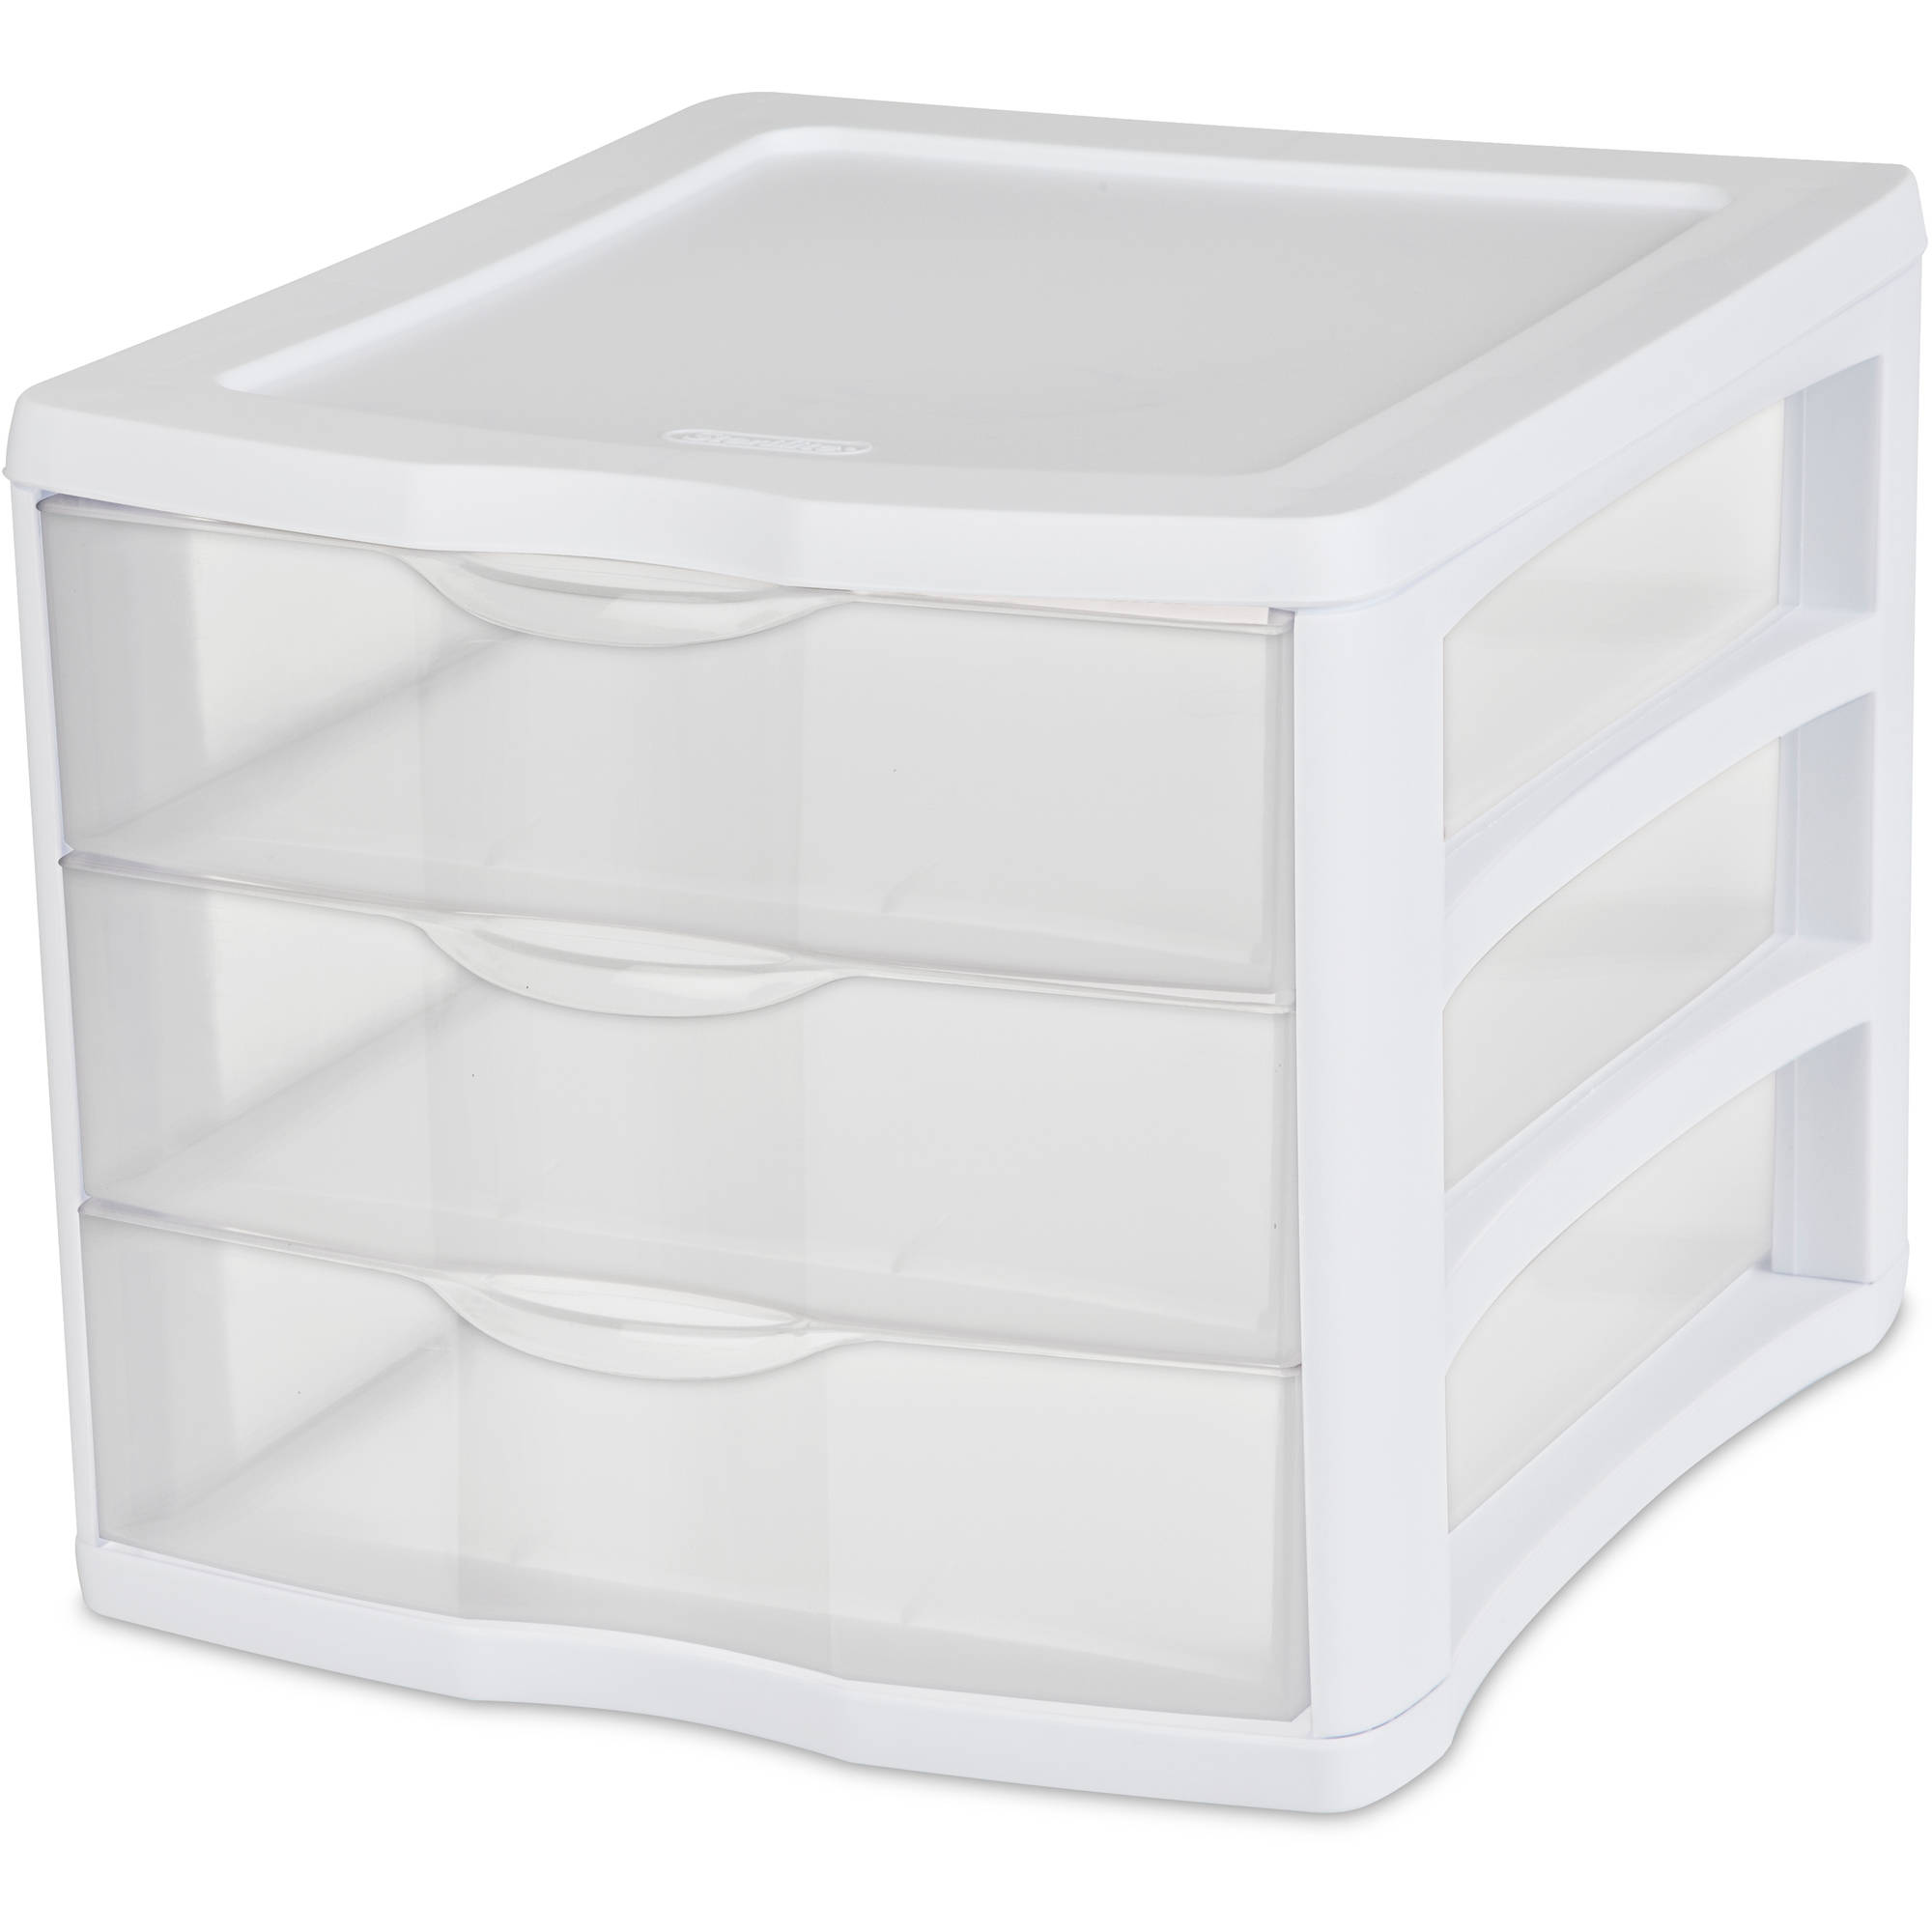 Amazing Sterilite Drawer Organizer White Available In Case Of Or Single Unit With Plastic Desk